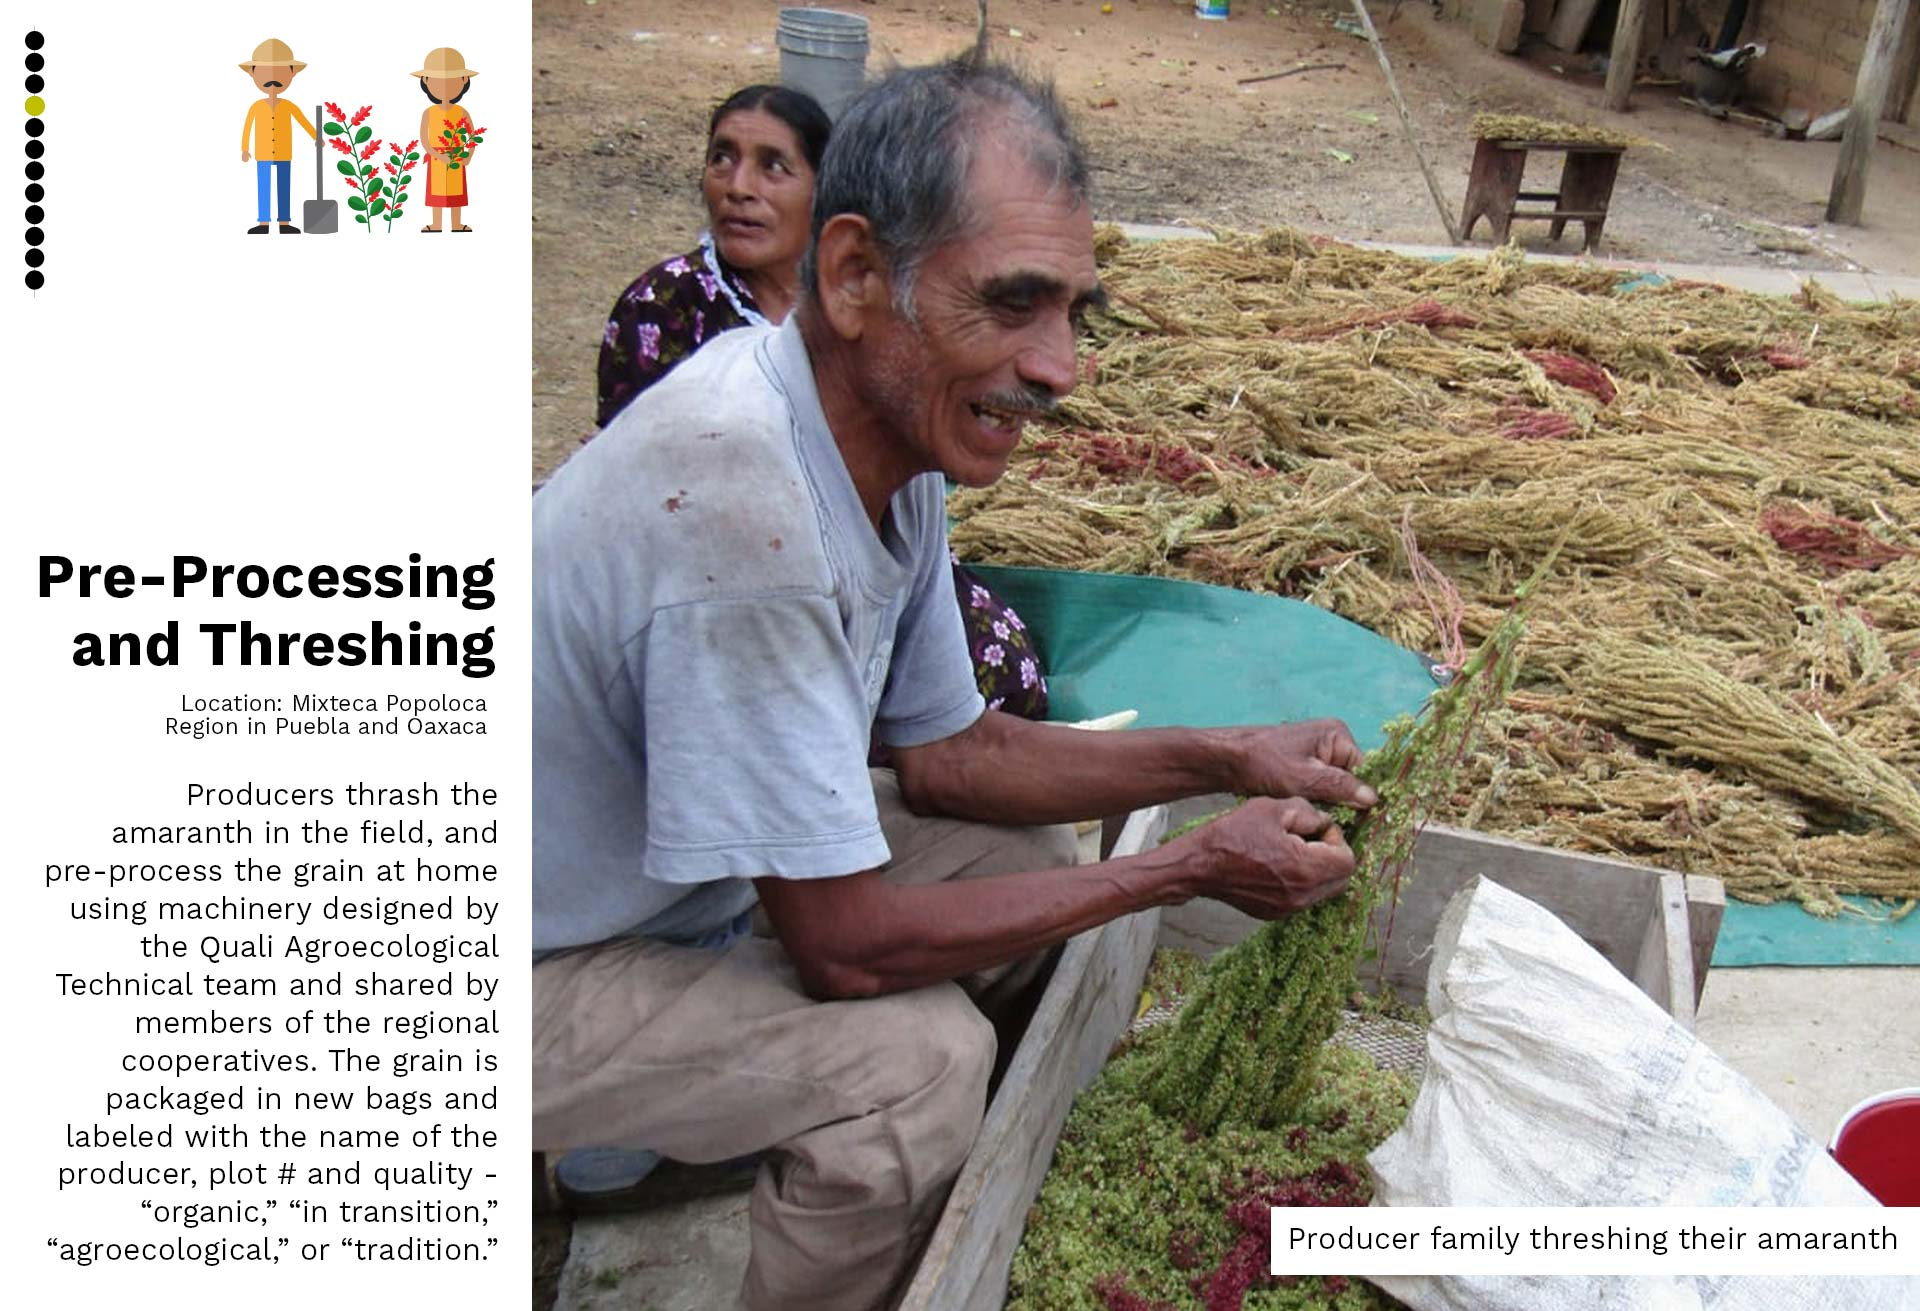 02a-Pre-Processing and Threshing